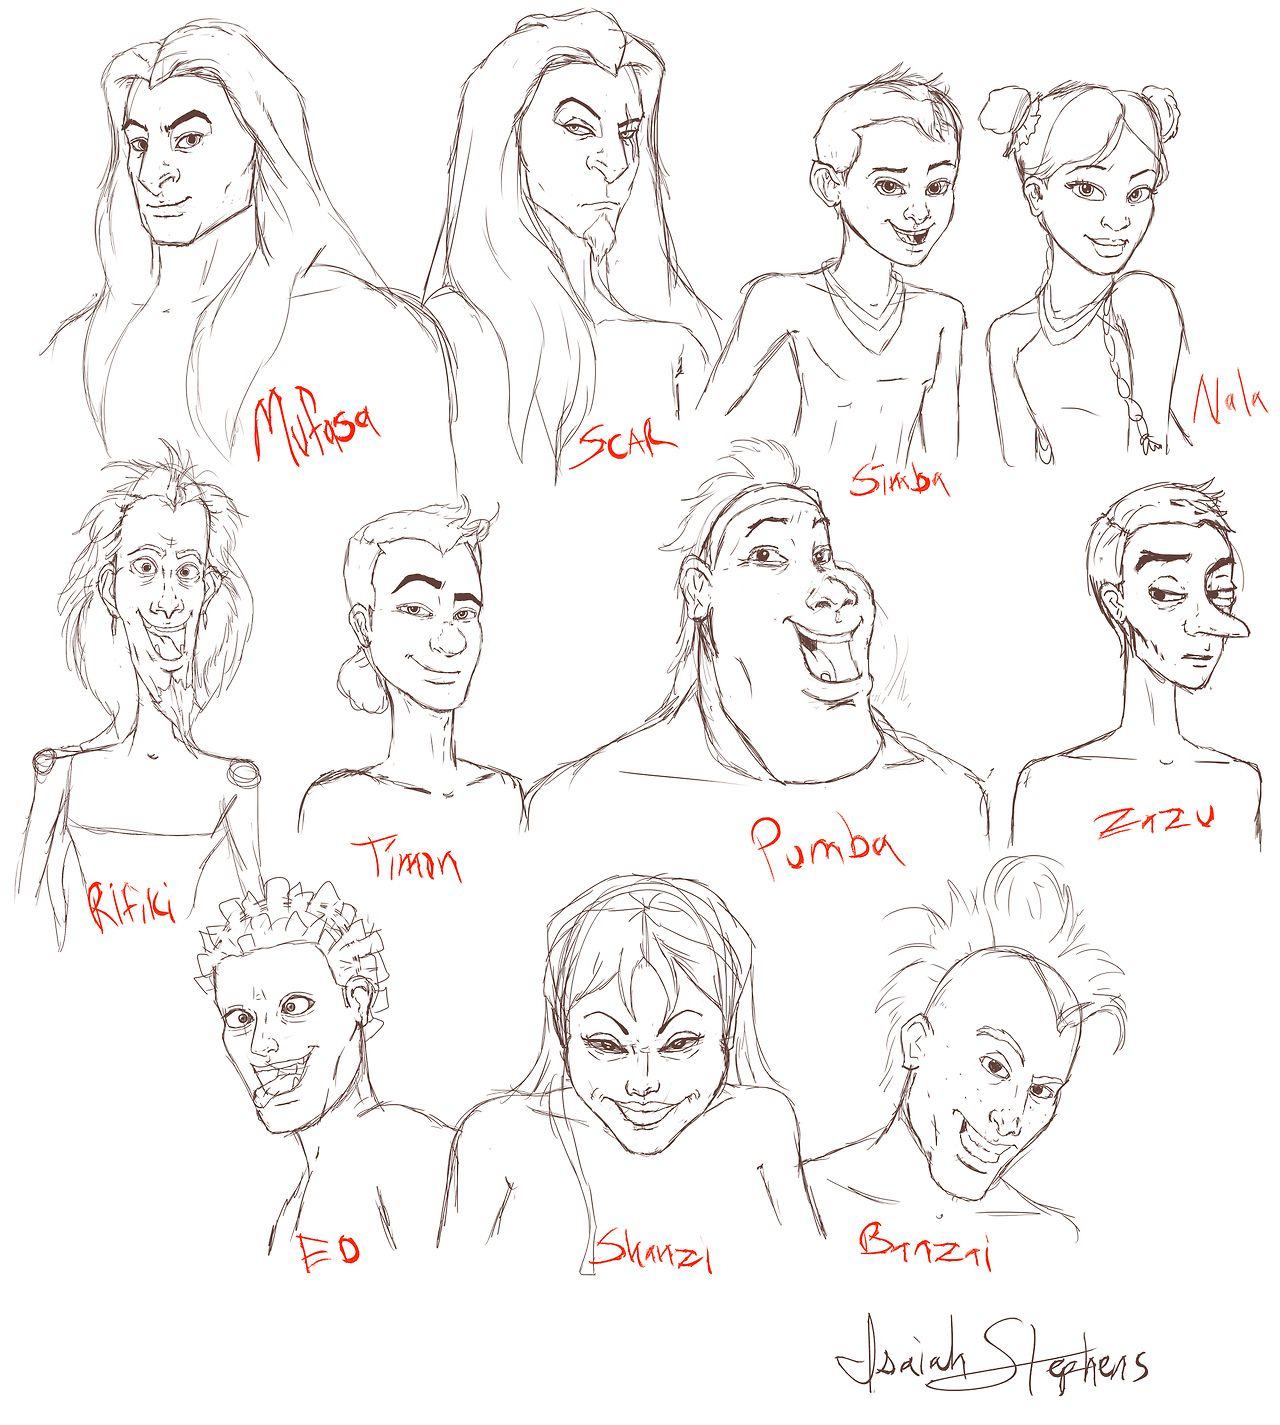 """humanized"""" lion king sketch dump - isaiah stephens they need an"""